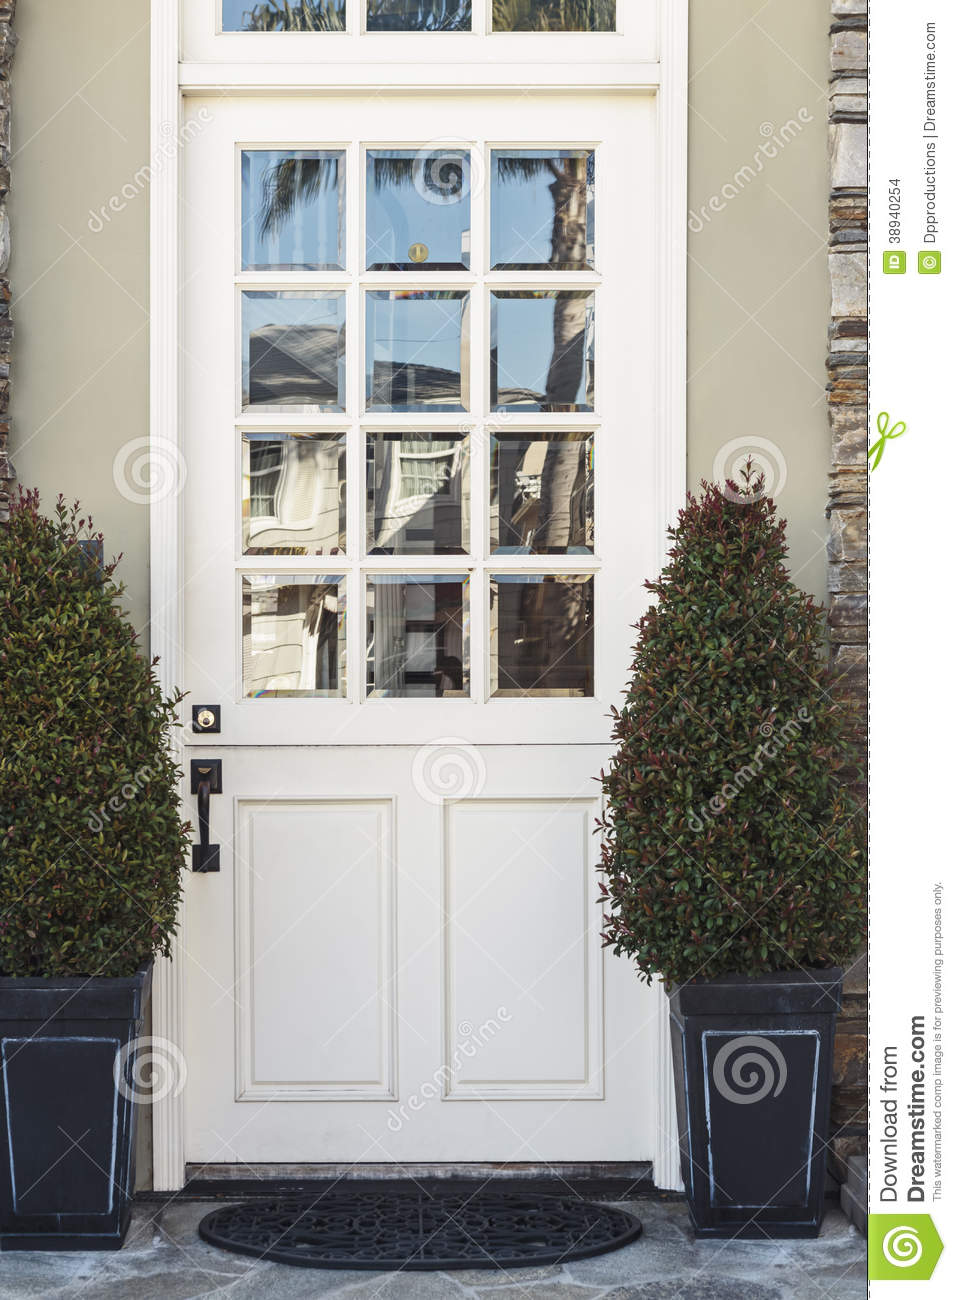 White front door to modern home flanked by plants stock for White front door with glass